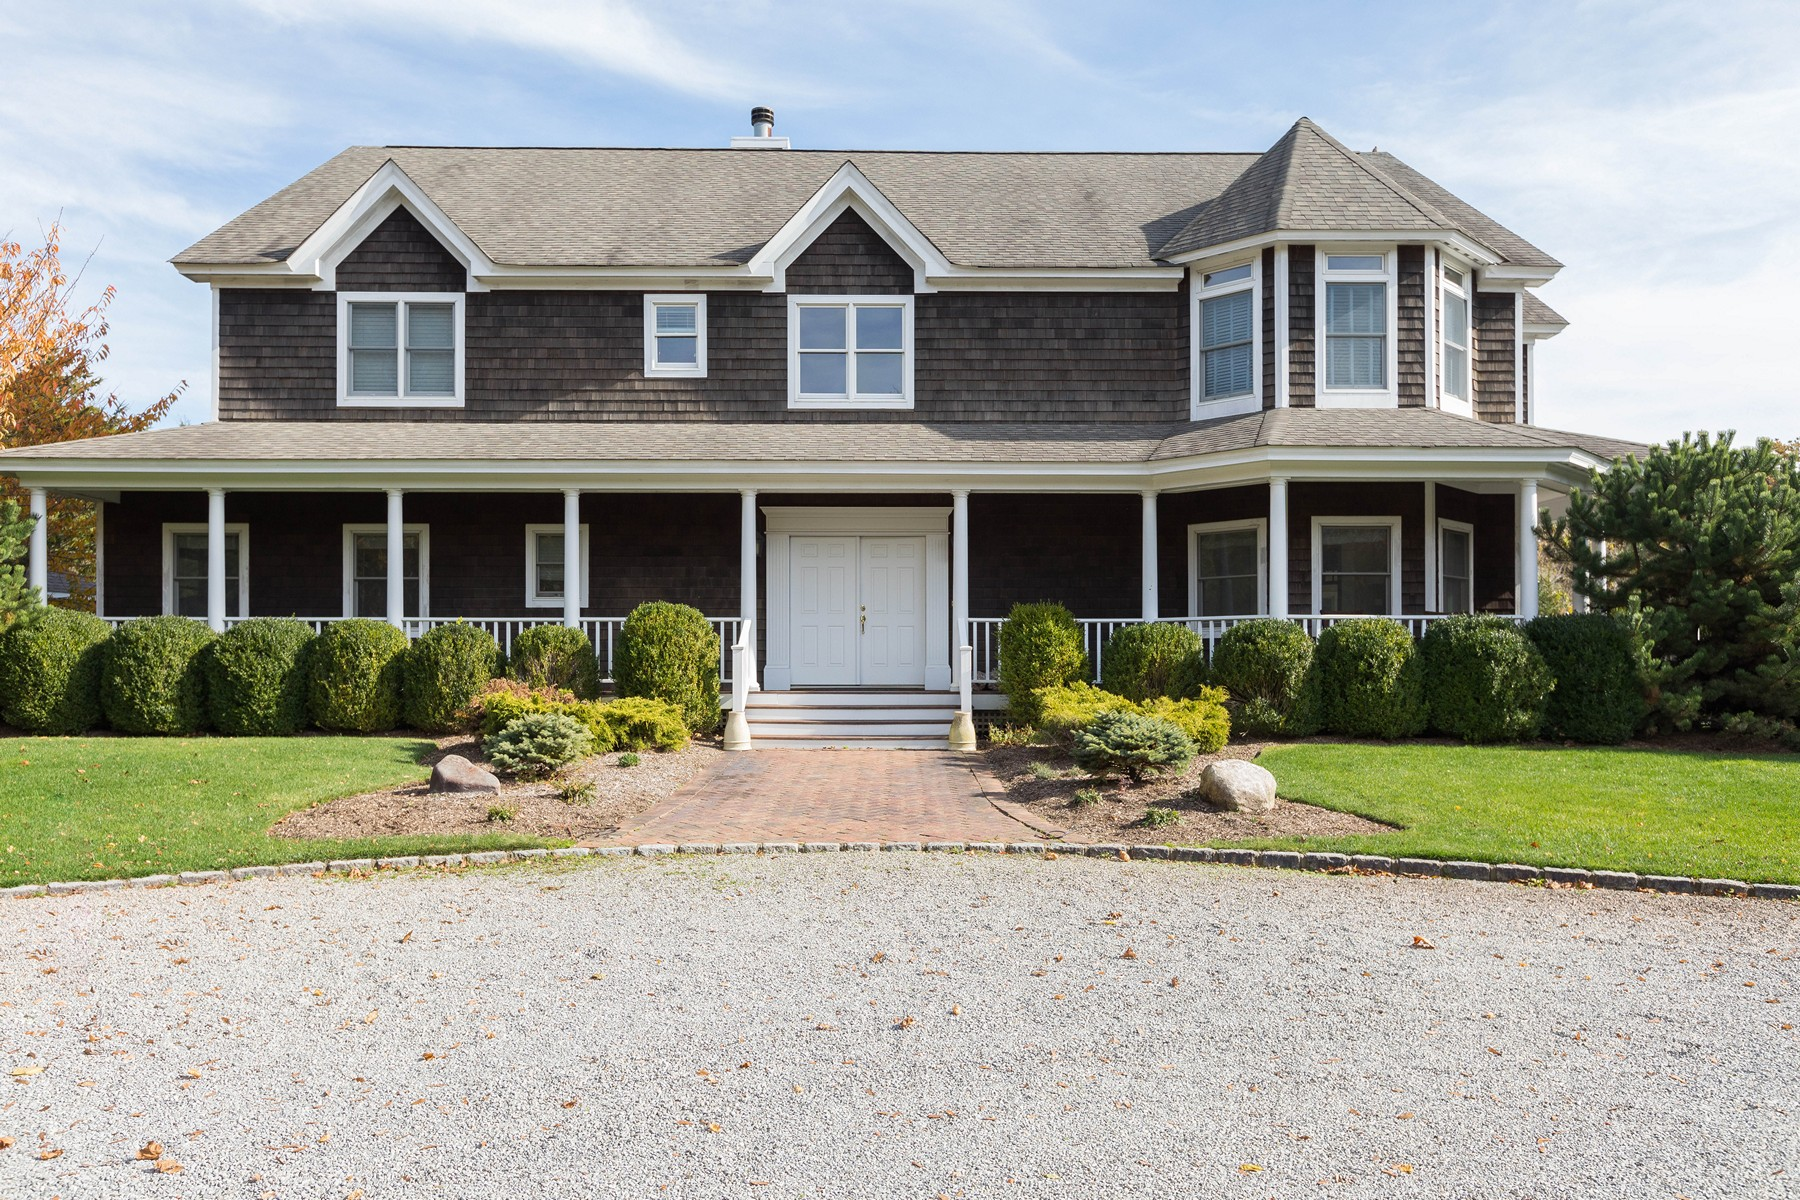 Single Family Homes for Sale at Quogue 24 Old Main Rd Quogue, New York 11959 United States